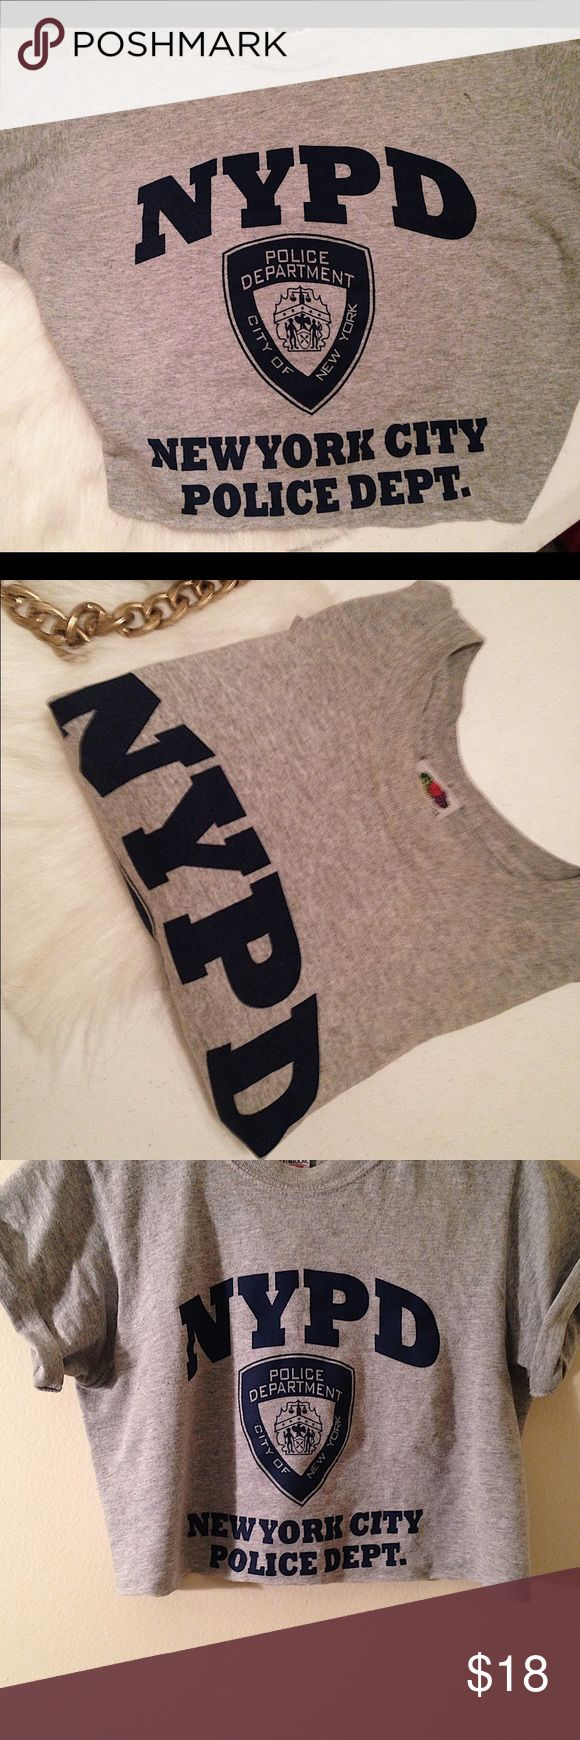 NYPD CUT OFF SHIRT Size small • cut off shirt • listed under LF for exposure LF Tops Crop Tops